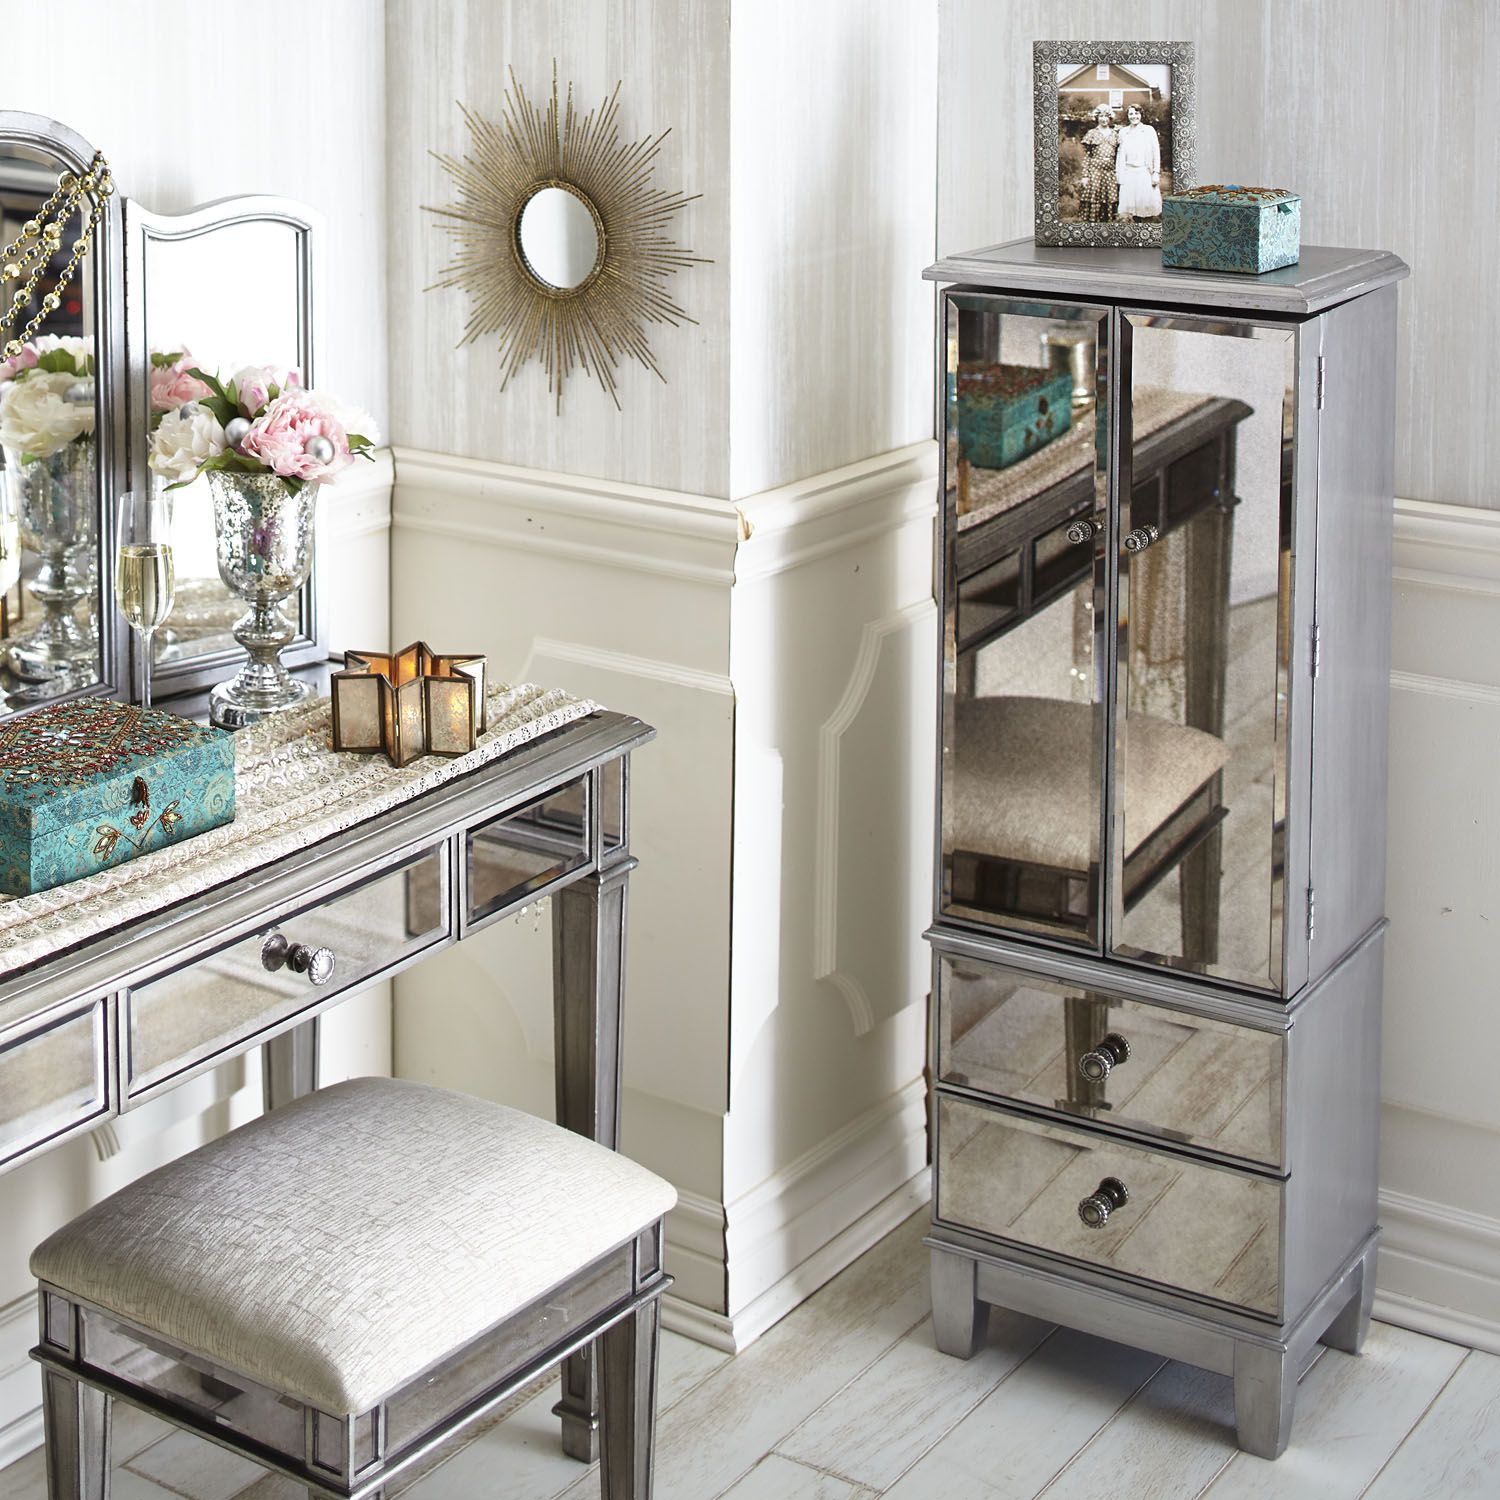 Hayworth Mirrored Silver Jewelry Armoire Furniture Mirrored